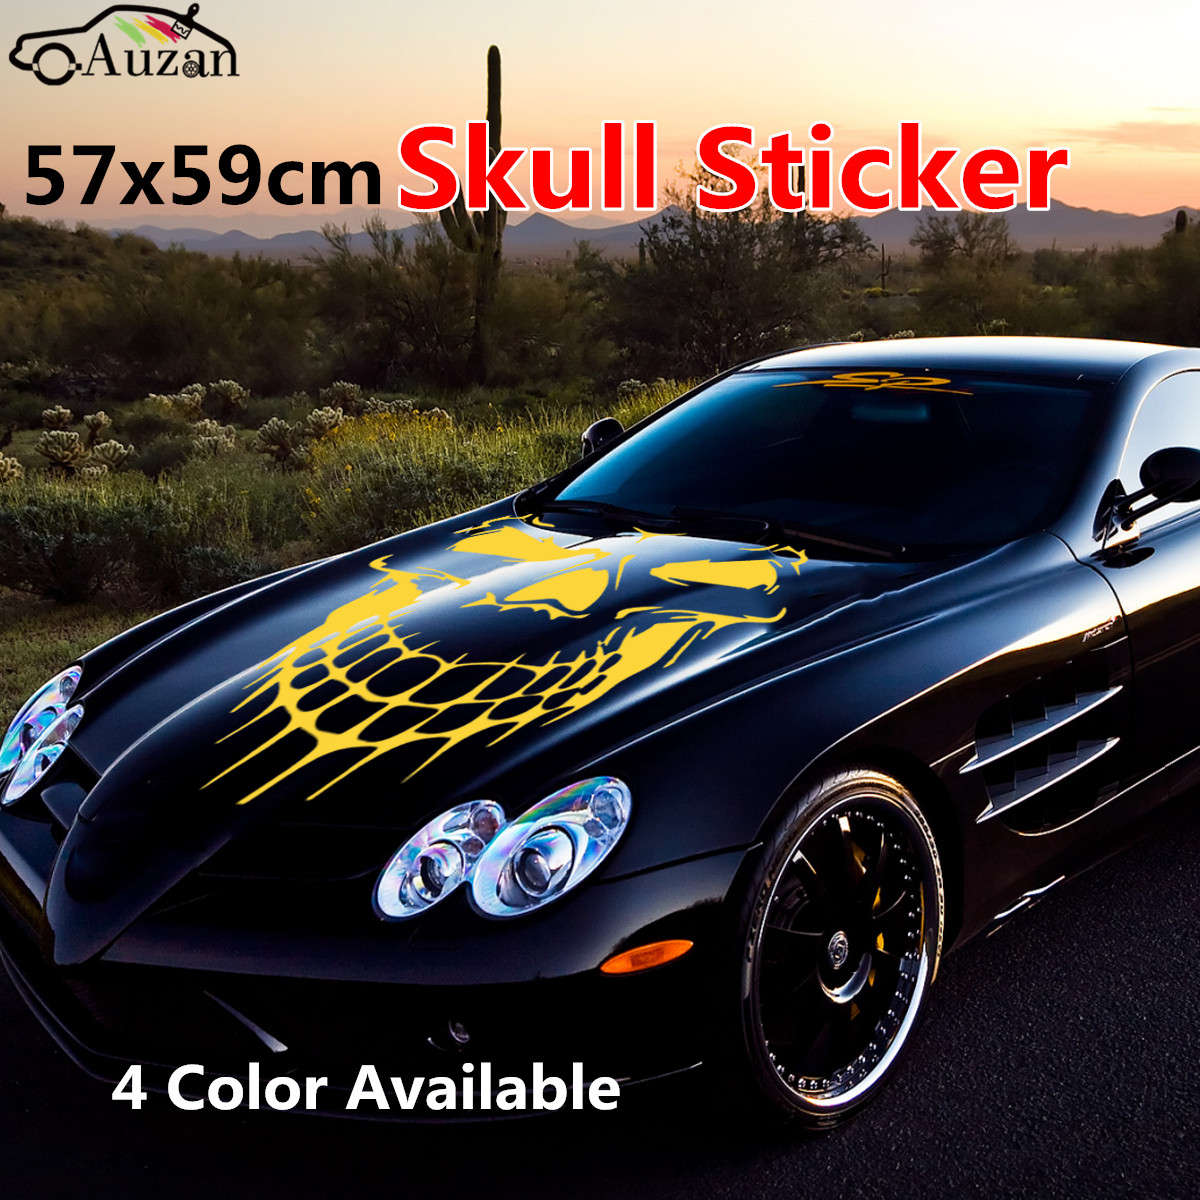 Universal car truck skull hood decal vinyl large graphic sticker 57x59cm in car stickers from automobiles motorcycles on aliexpress com alibaba group